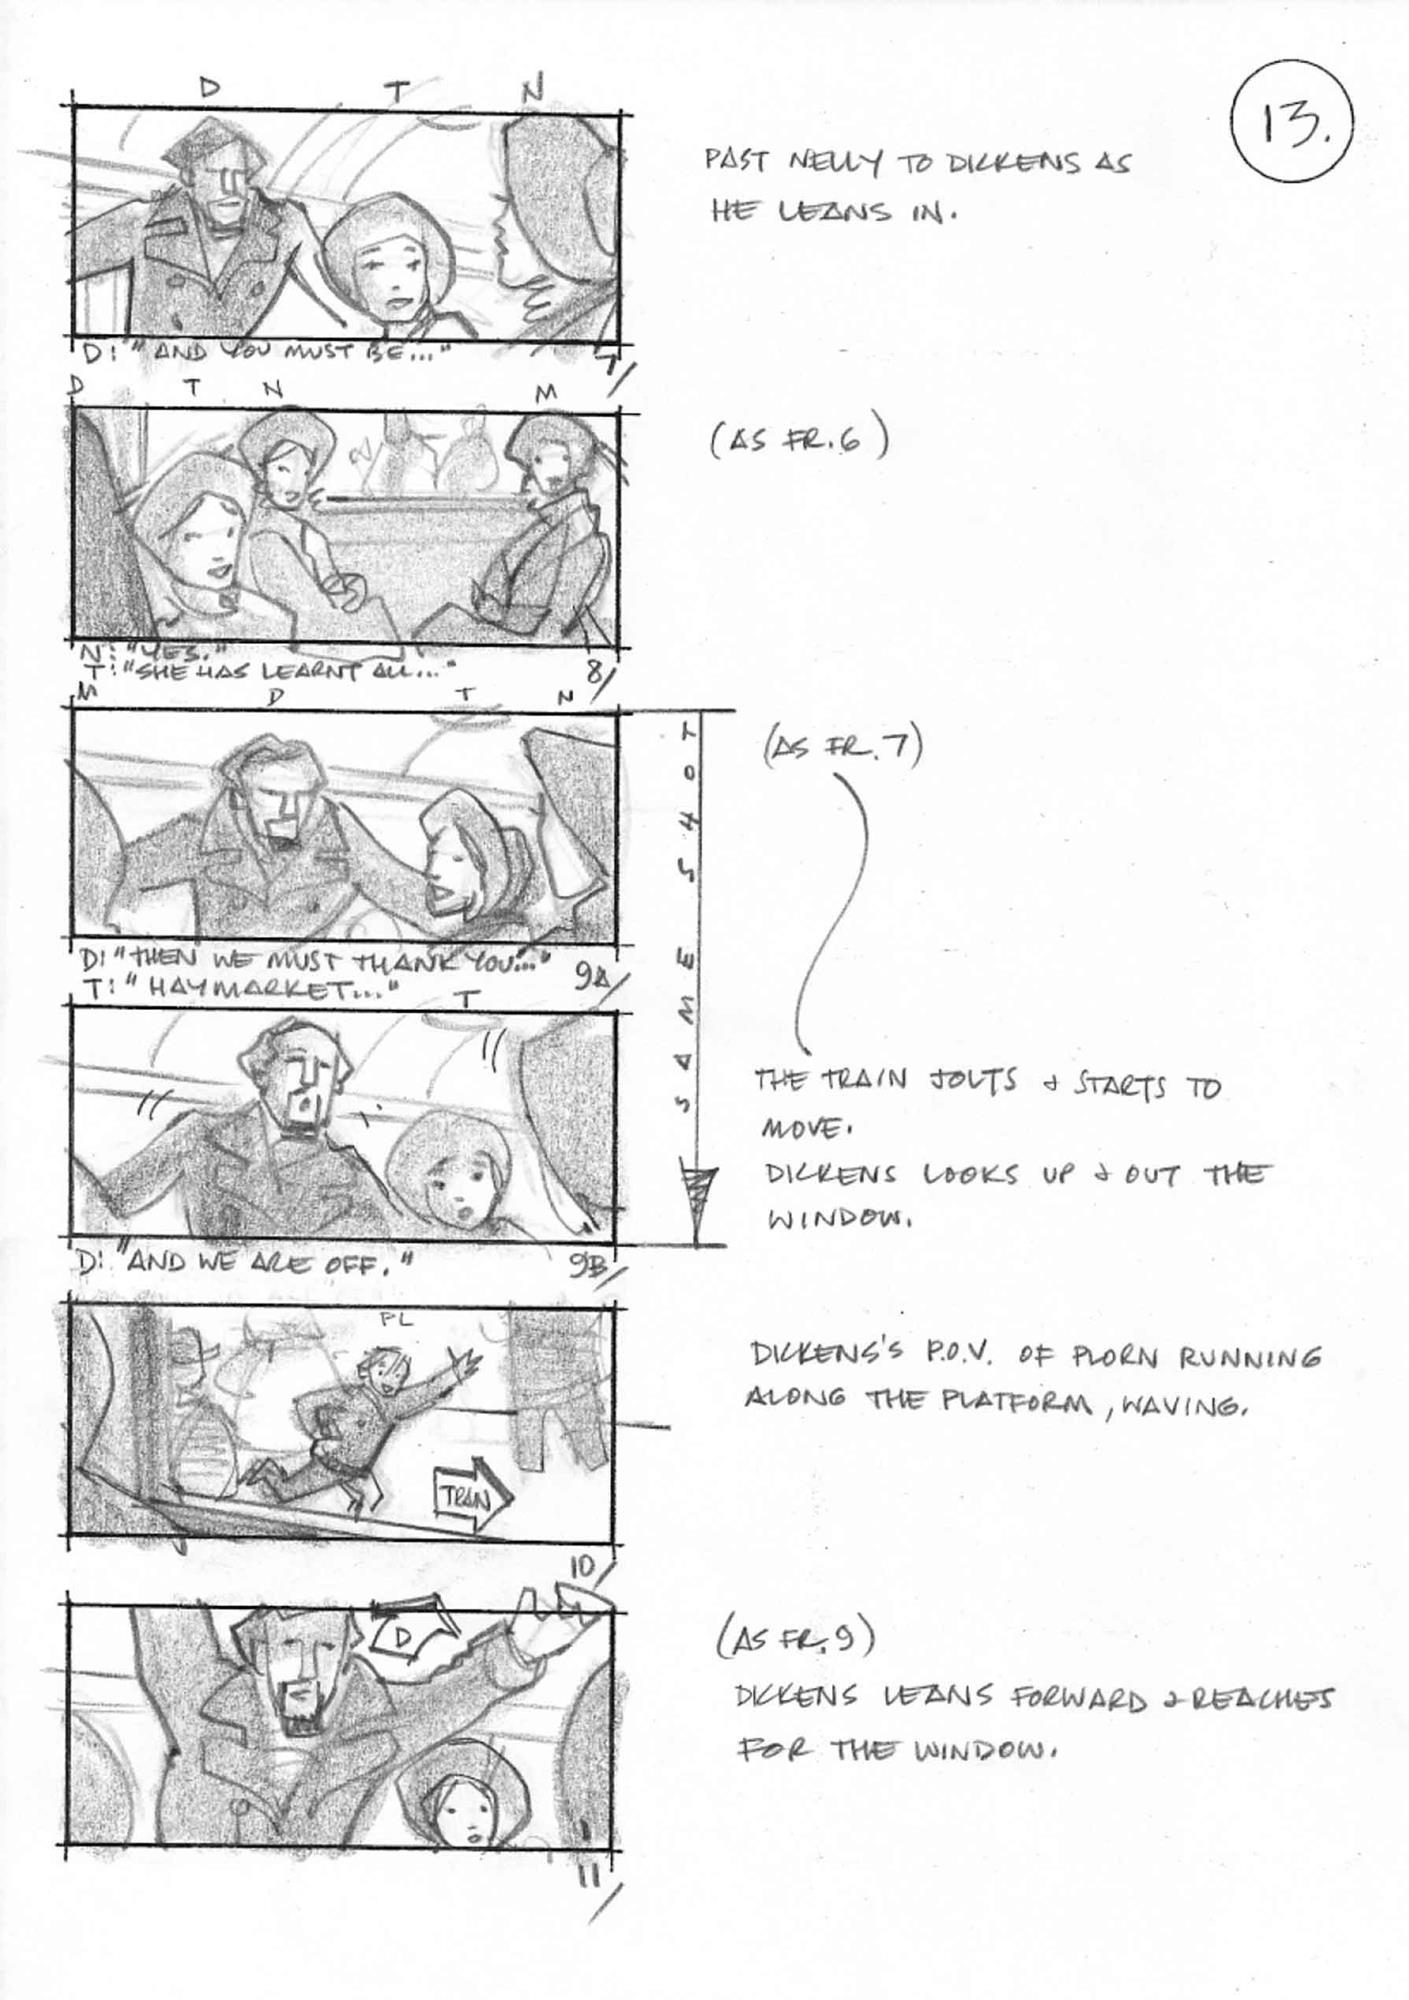 Exploring the storyboards of The Invisible Woman